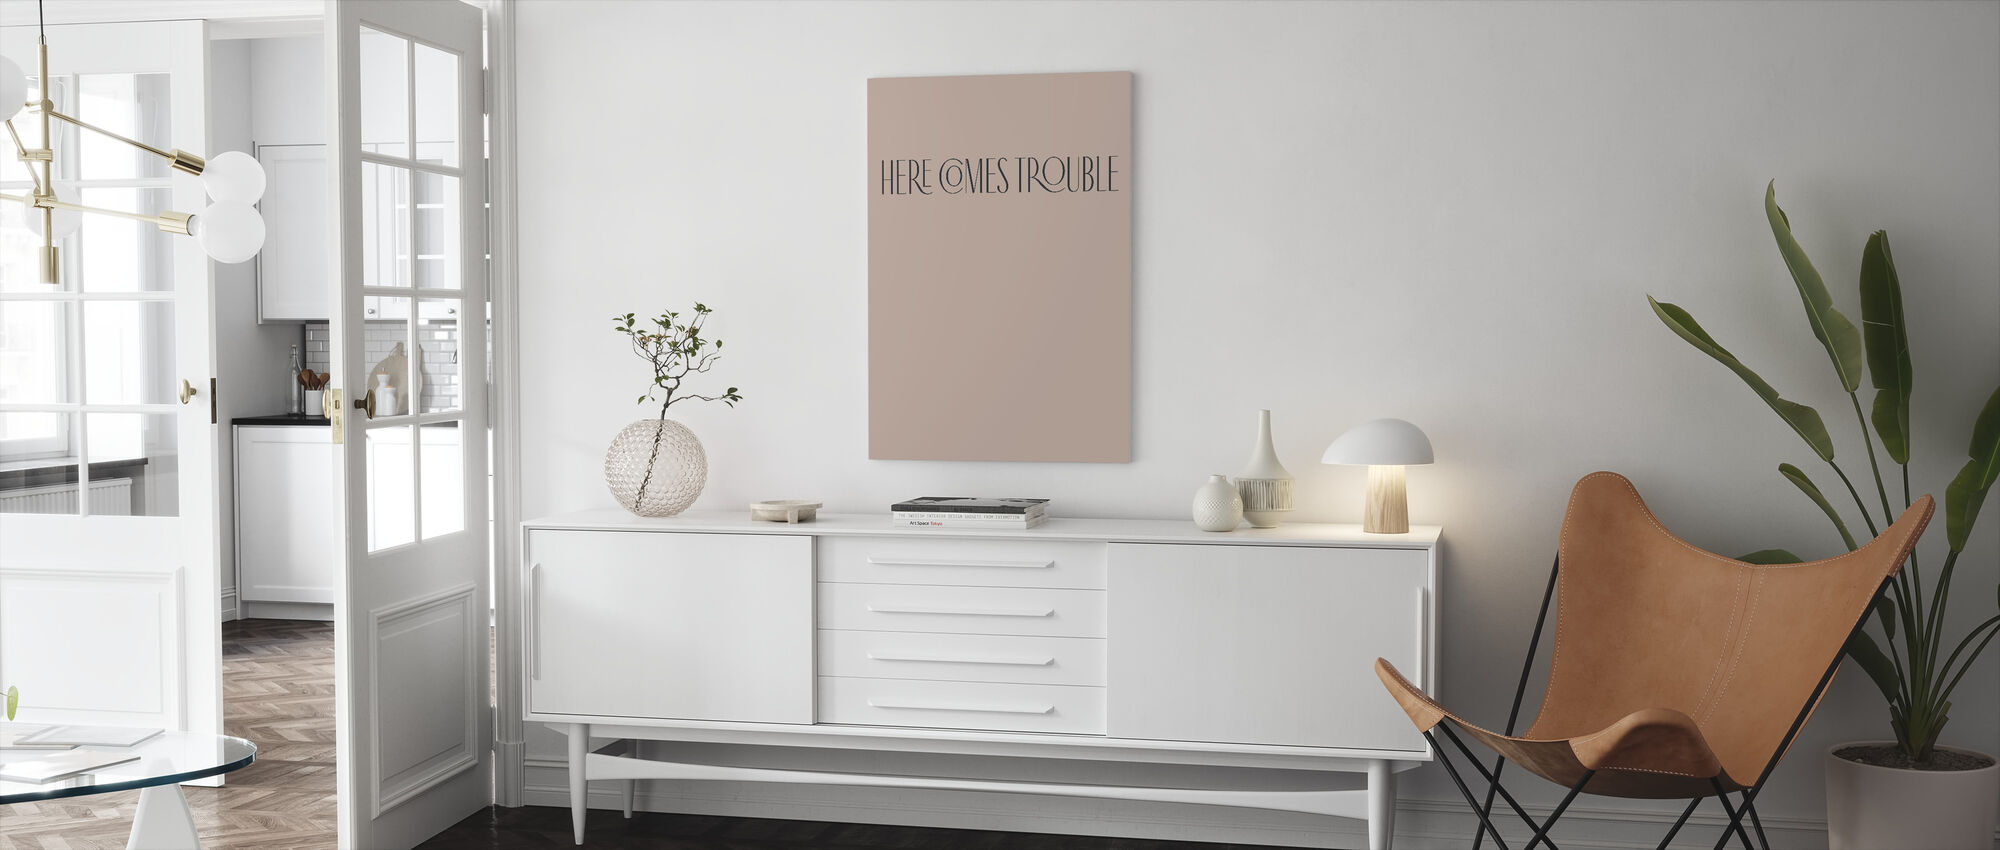 Here Comes Trouble - Canvas print - Living Room